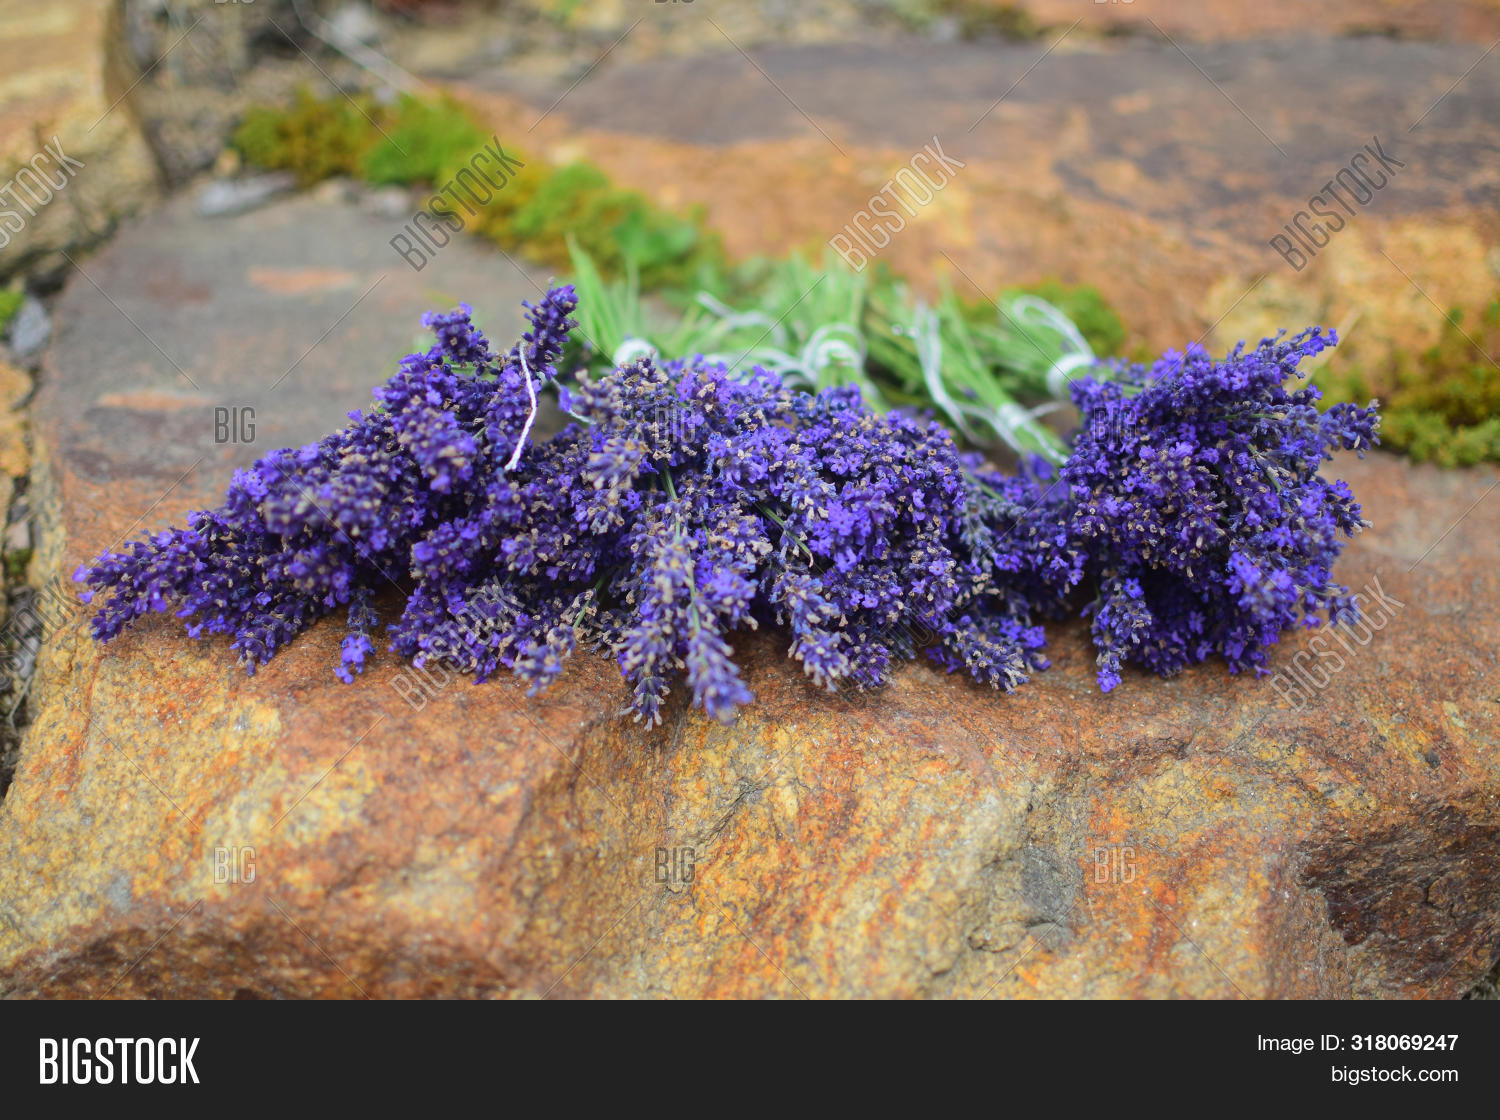 Lavender Flowers Image Photo Free Trial Bigstock